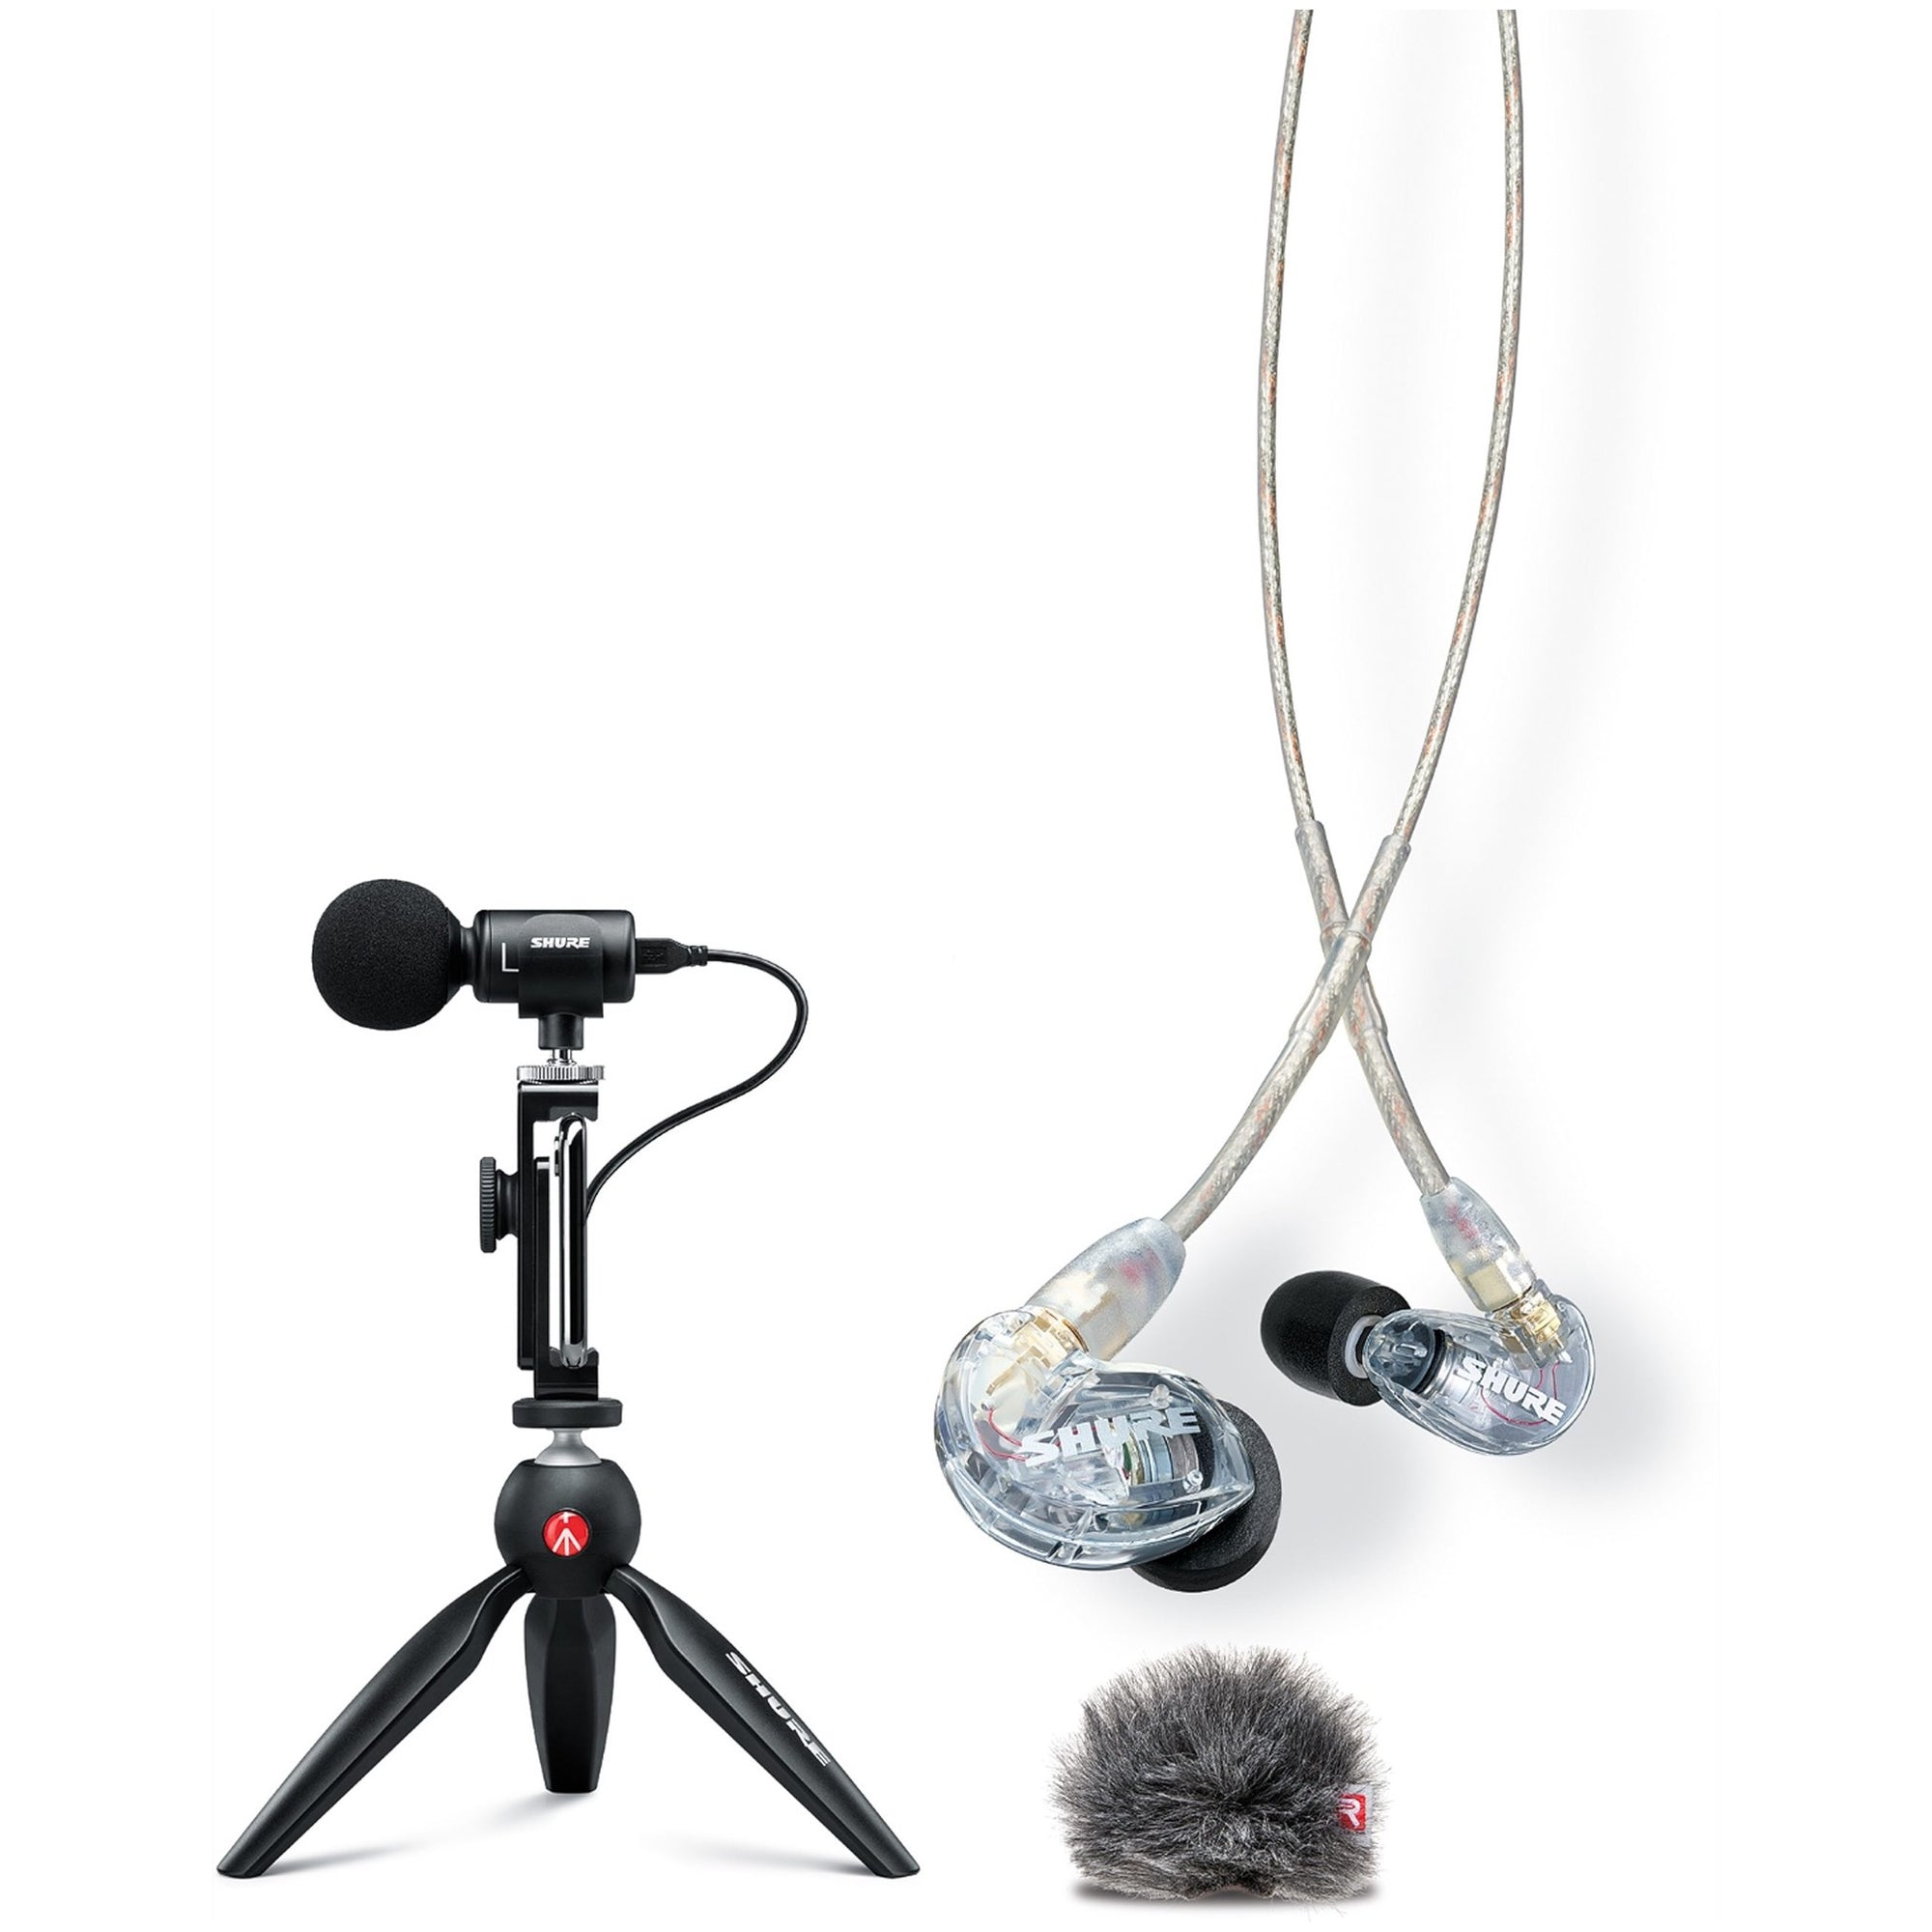 Shure MV88 Plus Portable Videography Kit (With SE215 Earphones and AMV88-Fur Windjammer)